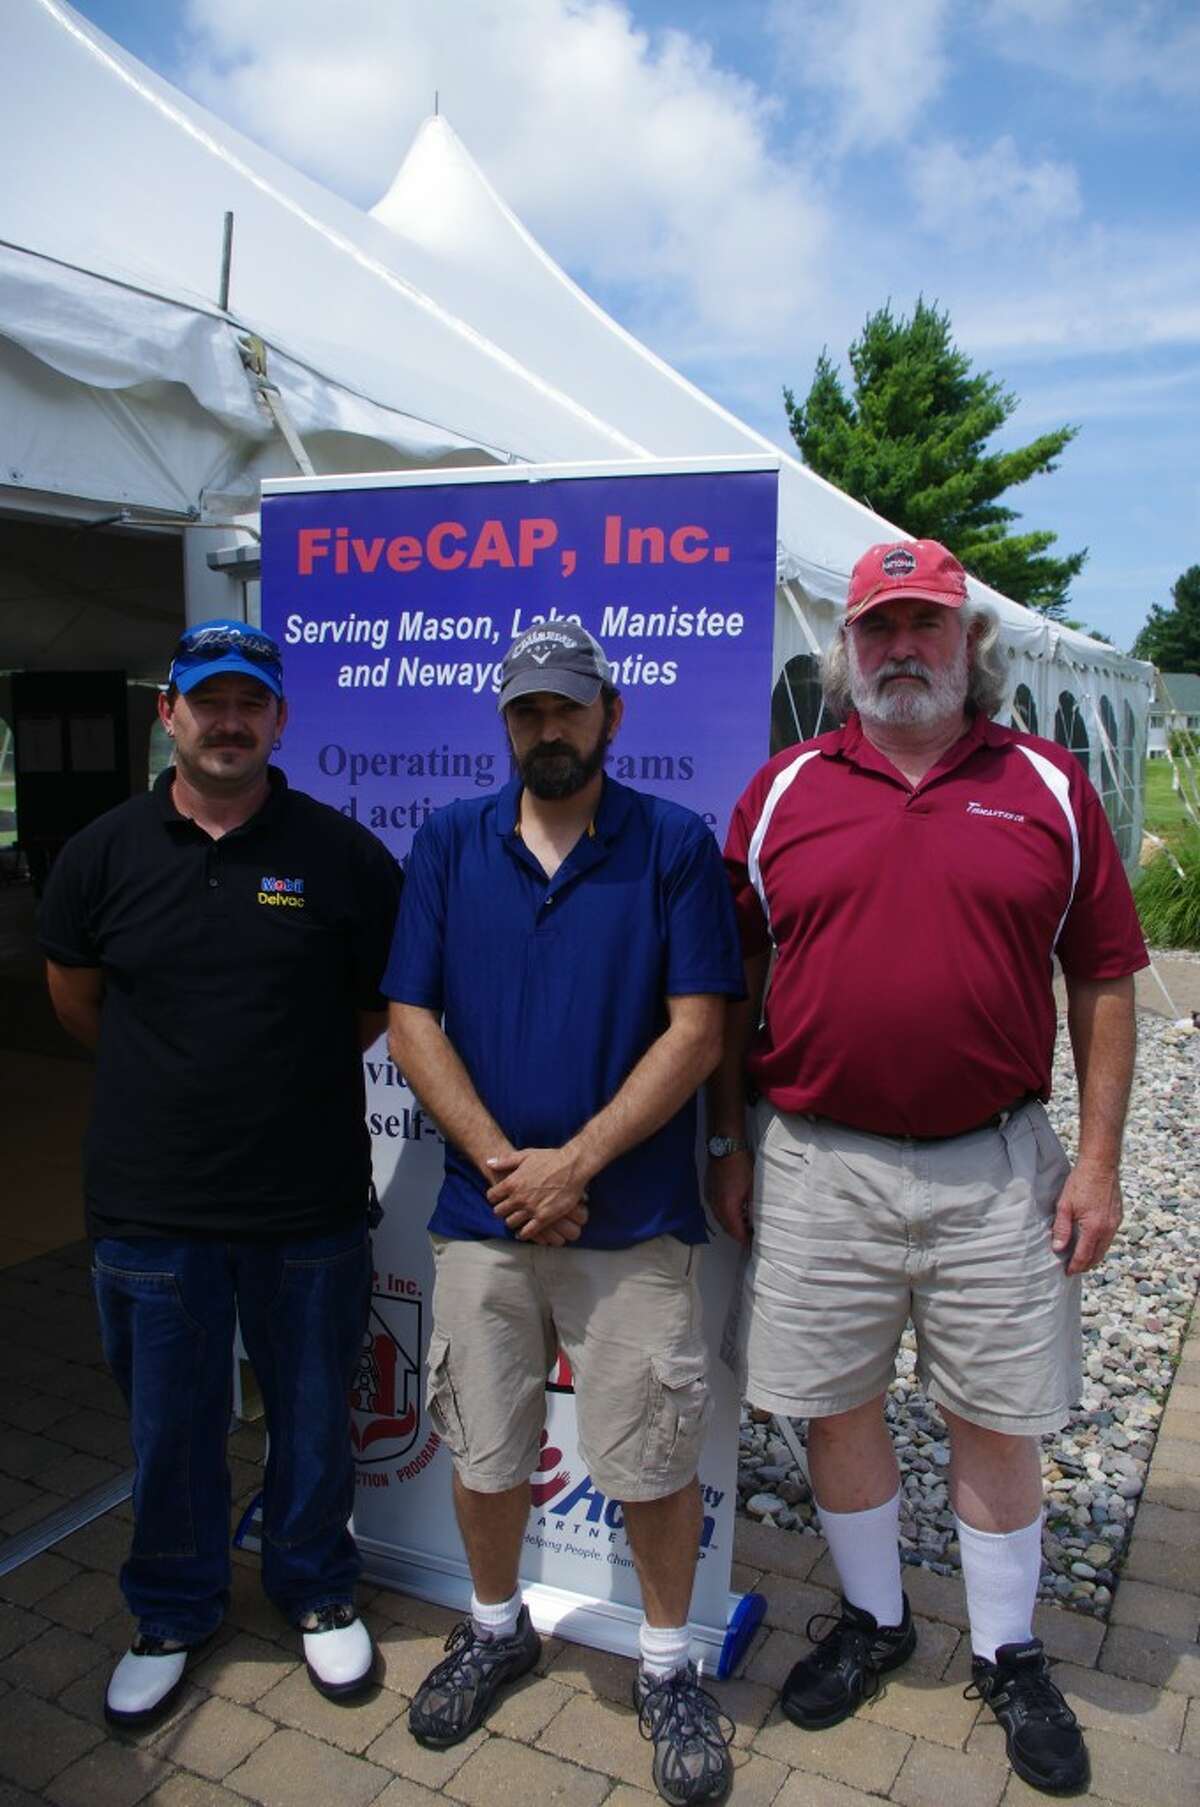 Members of the first place team at the FiveCAP Golf for Warmth event, finishing with 60 strokes, are (from left to right) John Sobaski, John Larr and Phil McKie. Not pictured is Kenner McKie. The outing was held at Manistee National Golf & Resort. (Dave Yarnell/News Advocate)